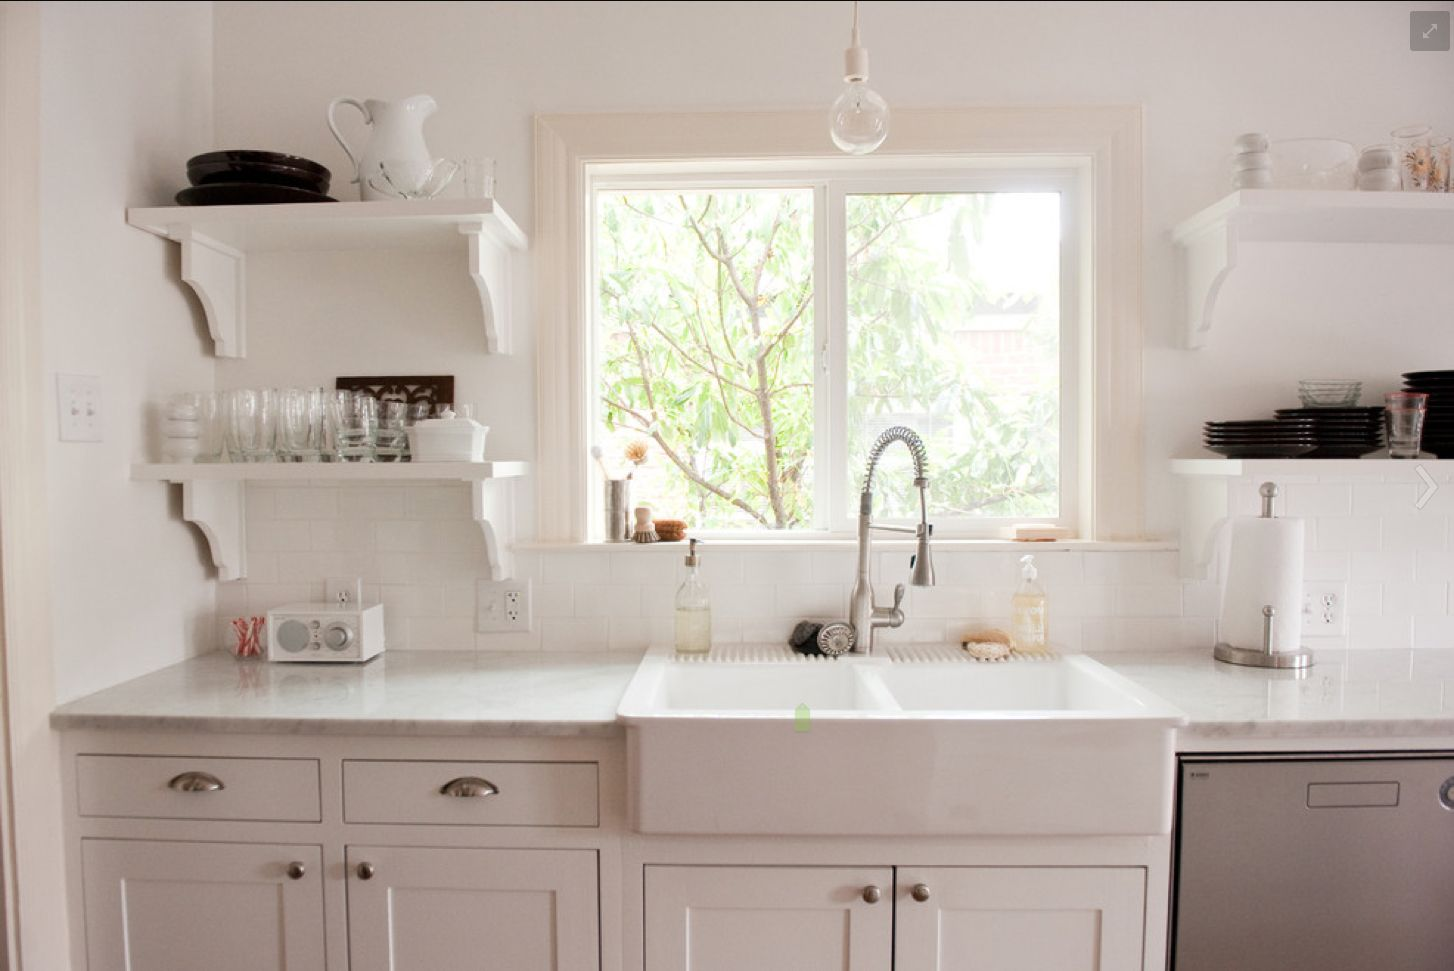 Ikea Domsjo Farmhouse Sink Kitchens Ikea Farmhouse Sink Ikea Sinks Ikea Kitchen